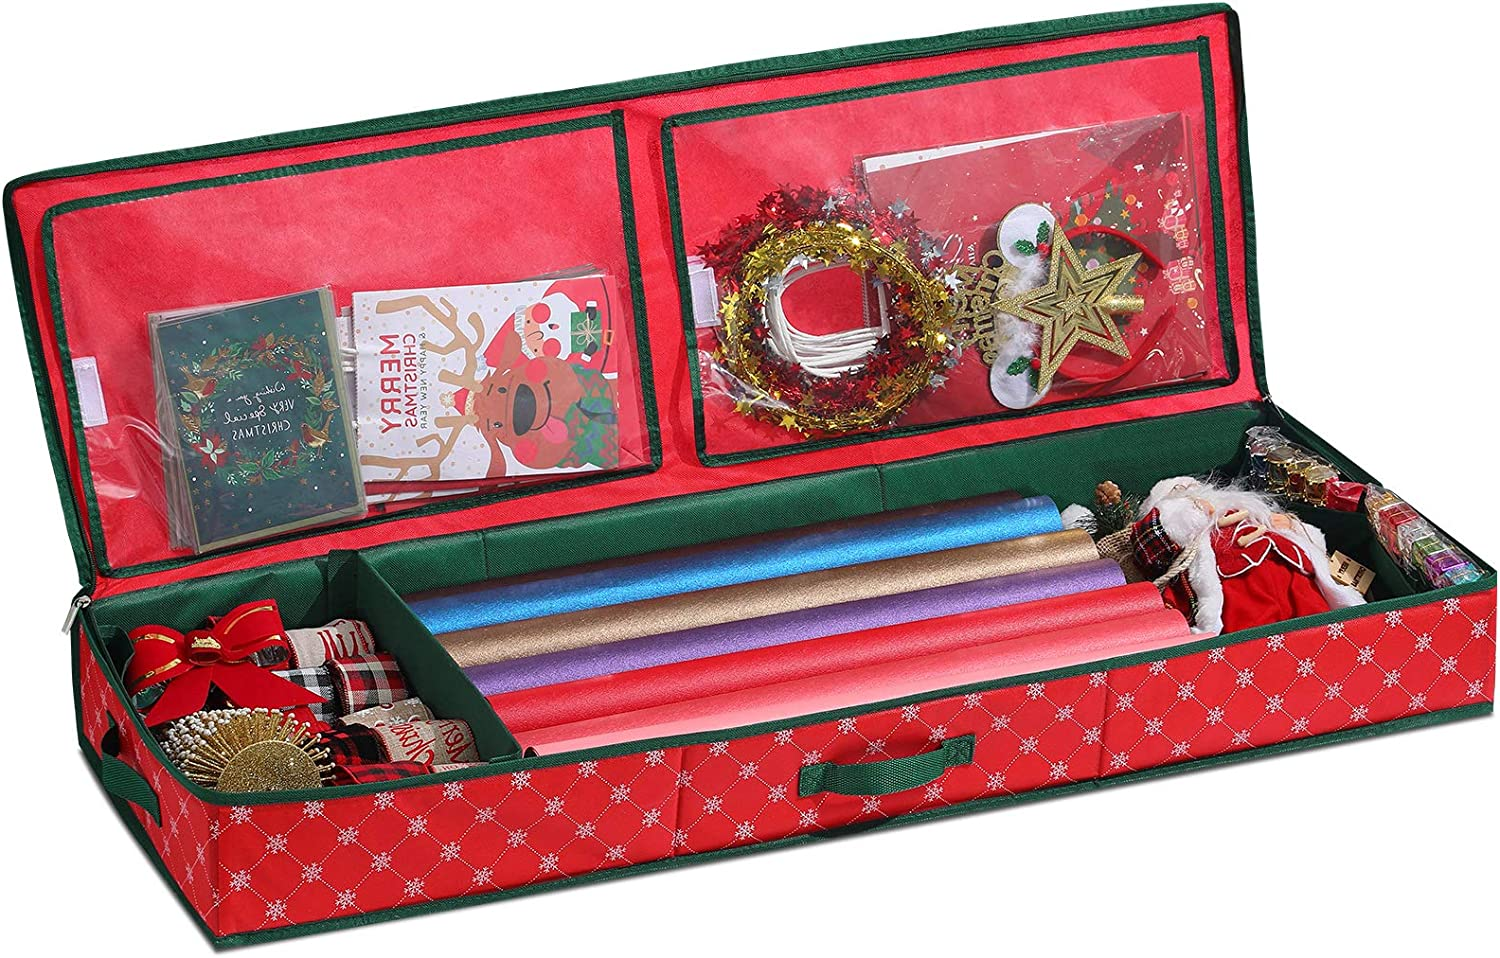 Christmas Wrapping Paper Storage Organizer [1 pack], Gift Wrap Storage Boxes Container for Ribbon, Card and Bows storage, Under Bed Storage Container for Holiday Decoration Storage, Paper Rolls